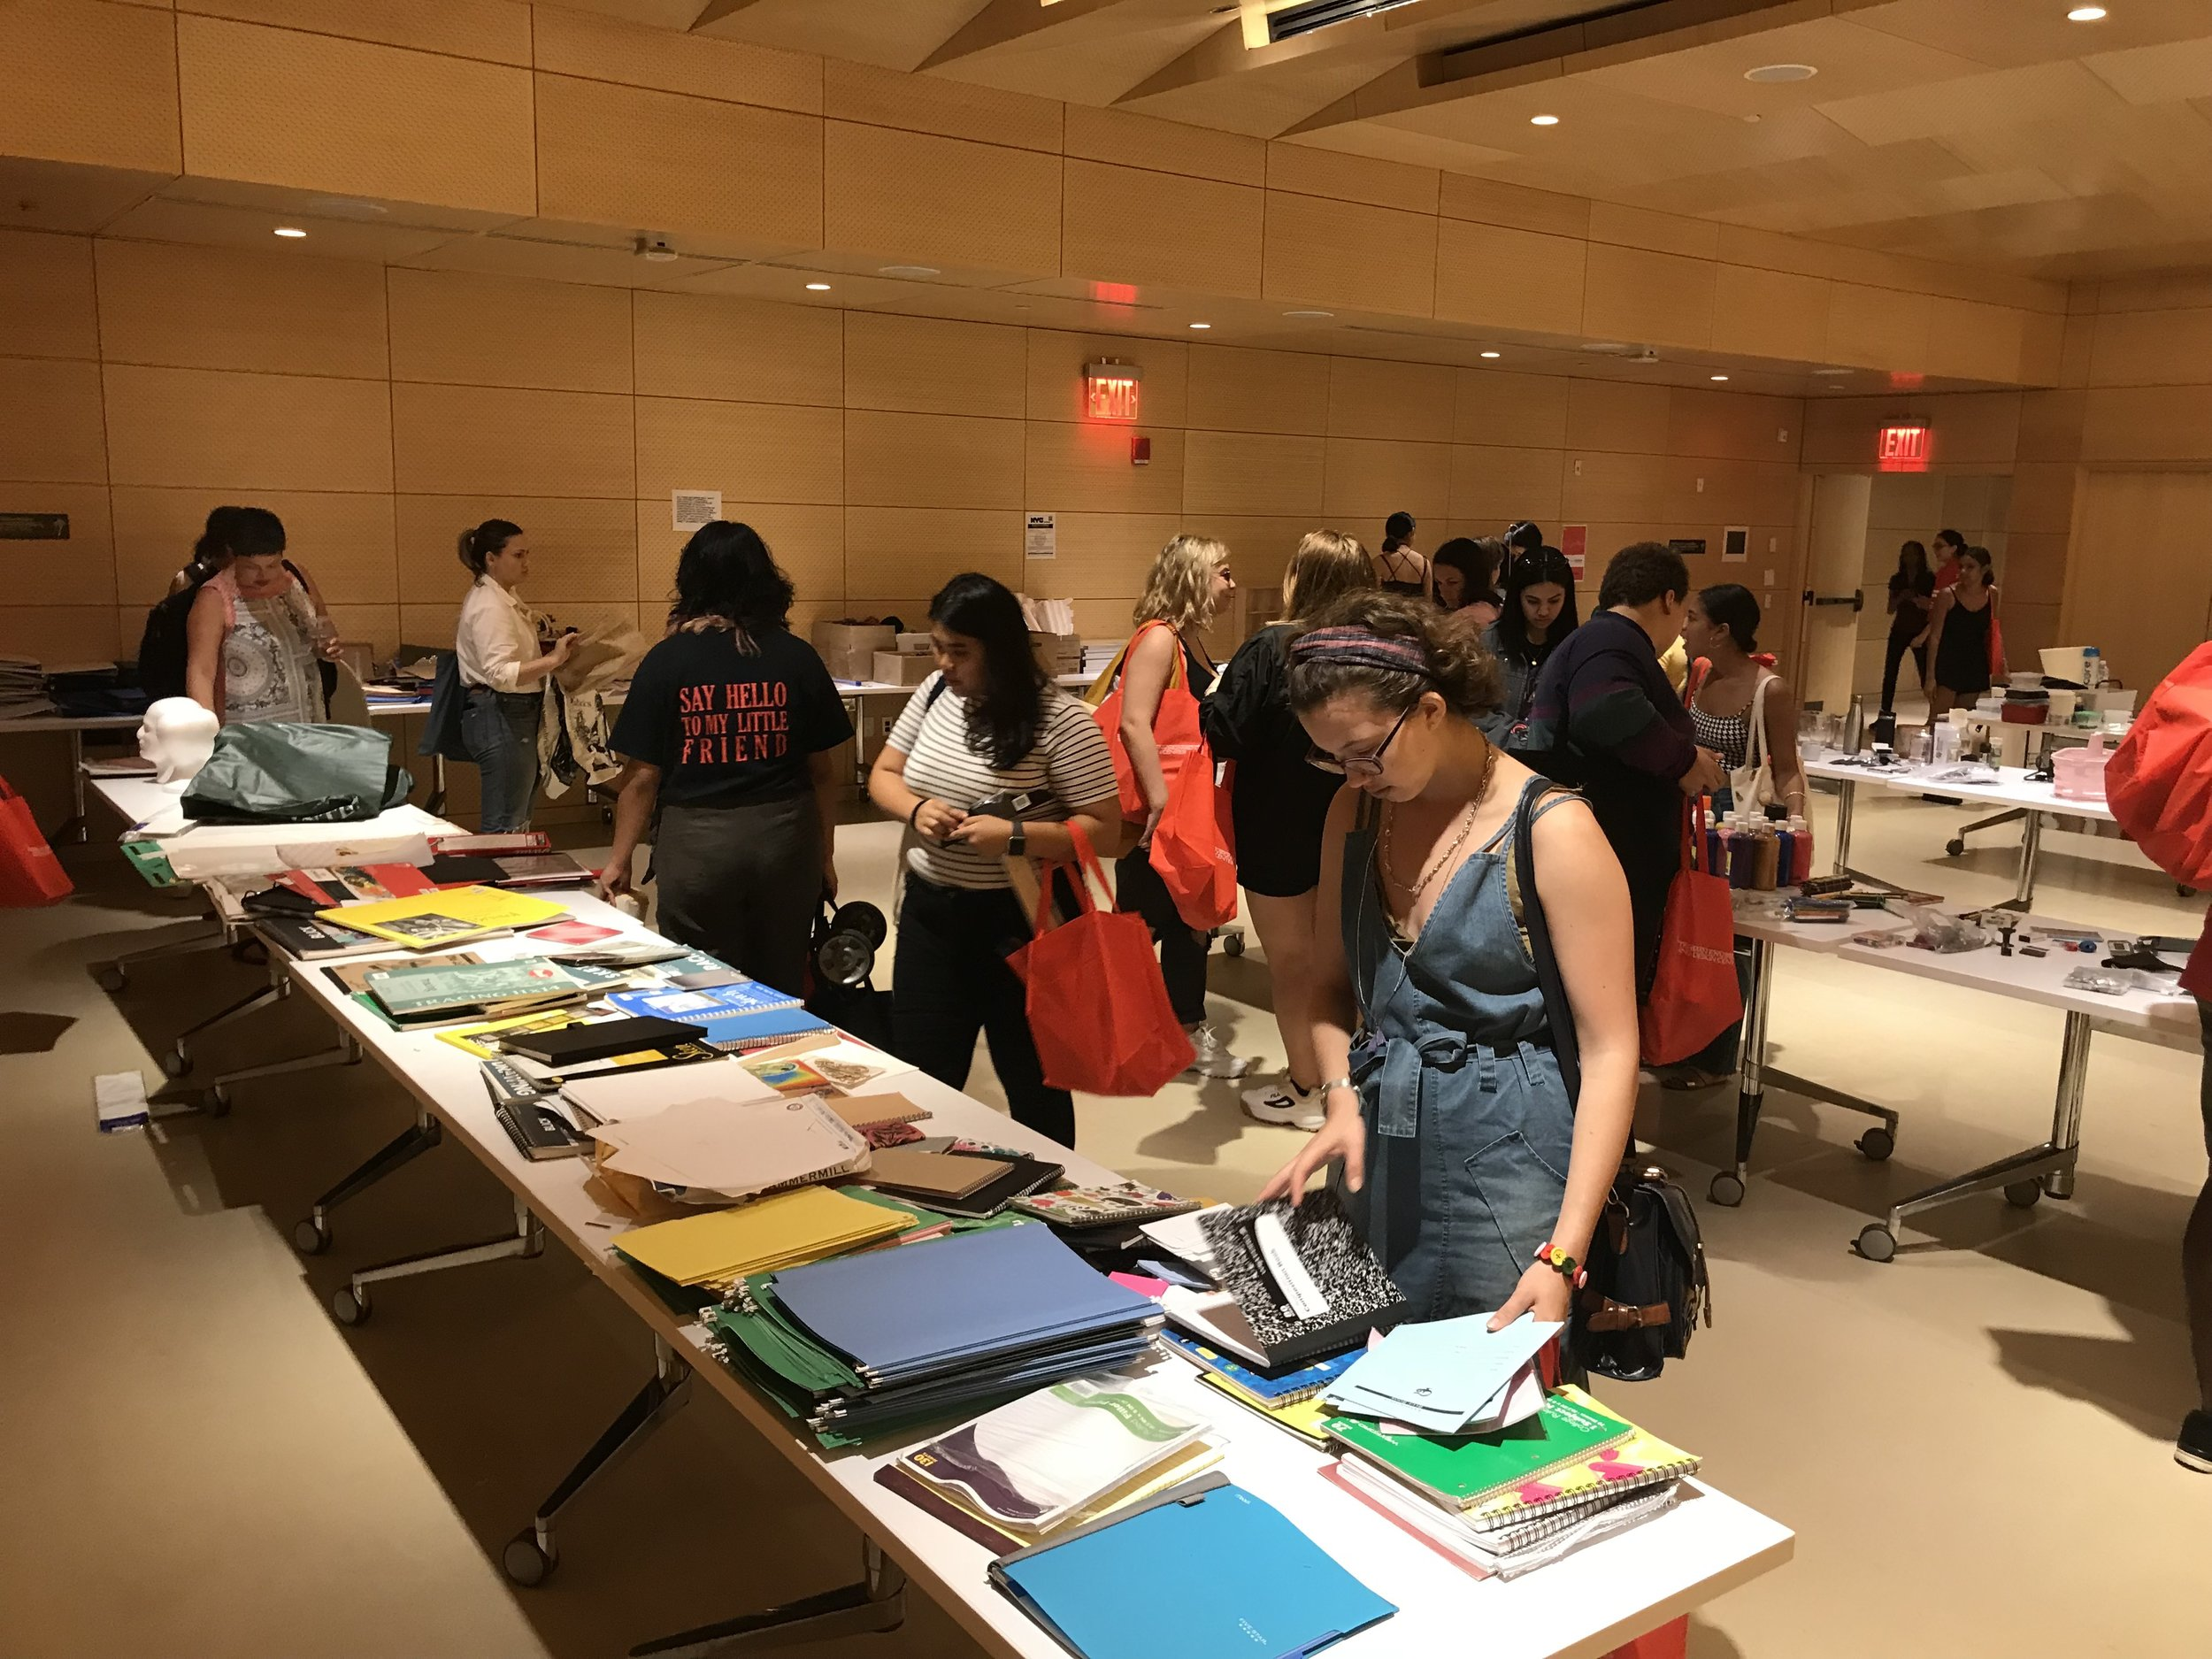 Good as New - Good As New is a reuse and waste reduction initiative that encourages all New School students to donate reusable school supplies and materials at the end of each semester so that these items stay out of landfills, and can be used by other students in the future.